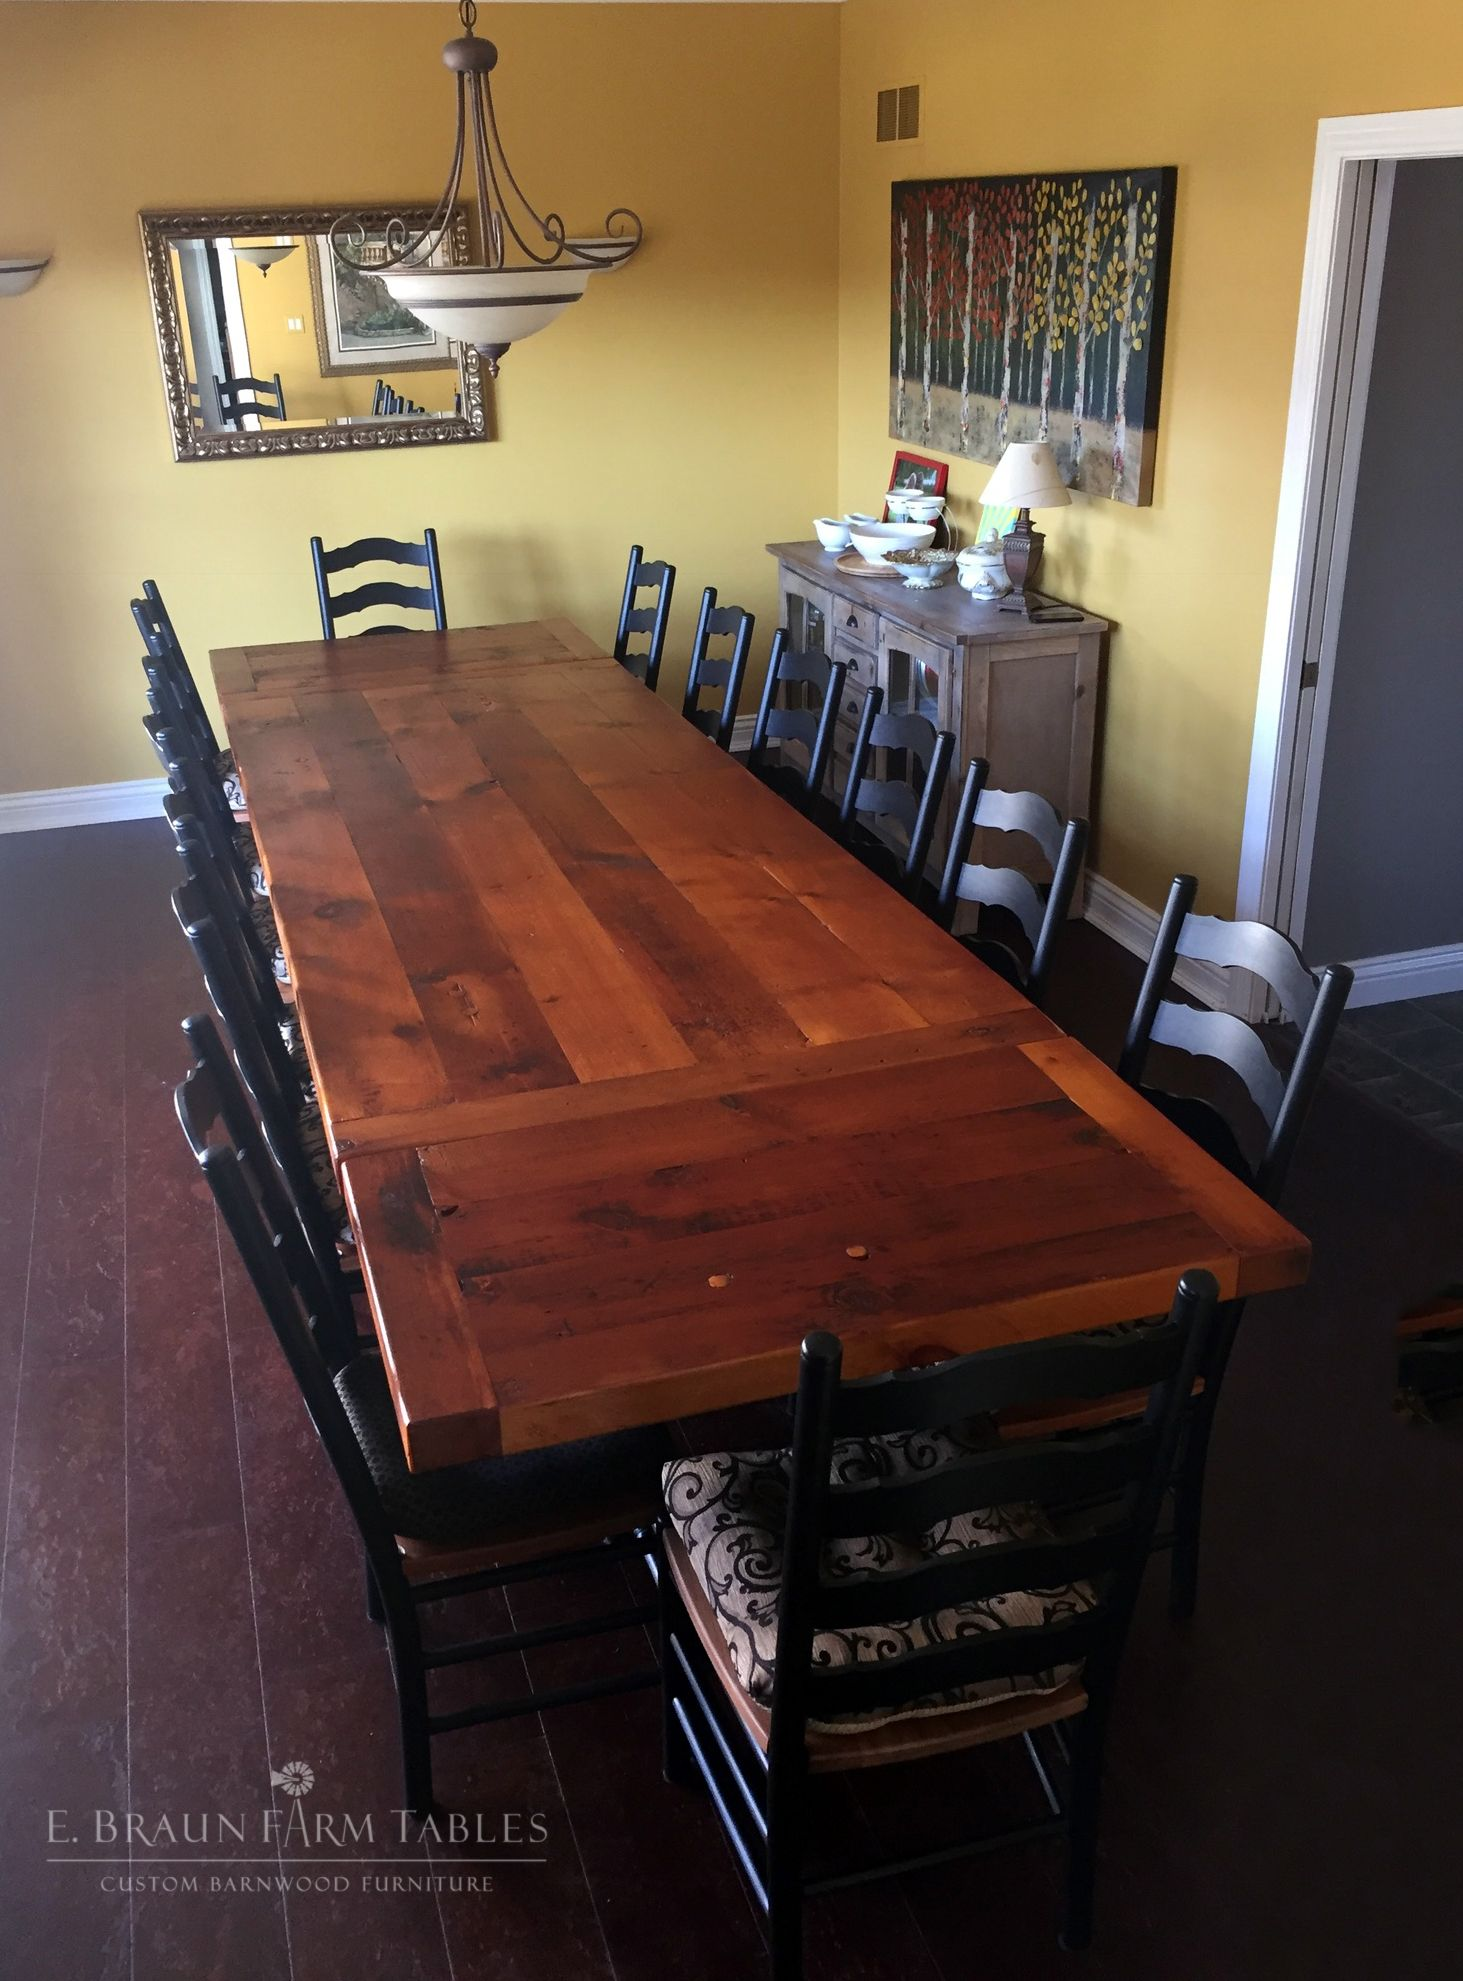 The 10 L Table Is A Stunning 3 Thick Reclaimed Pine Barn Wood